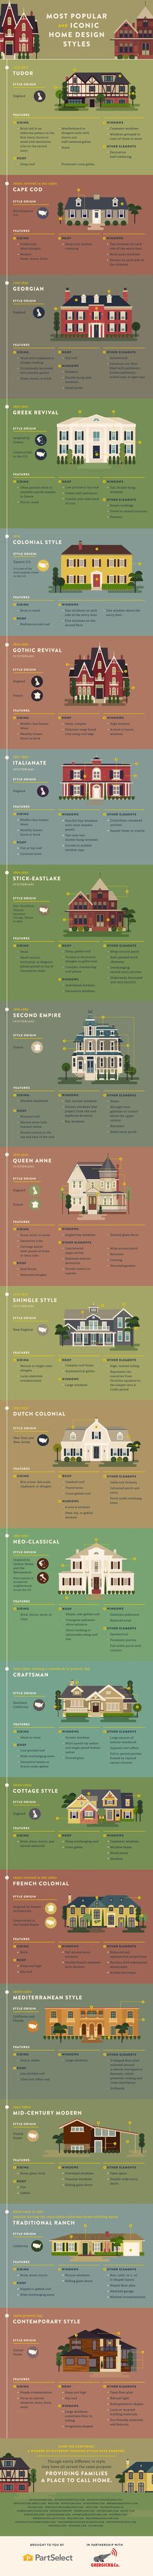 "Whether you're hunting for a new home to rent or buy, real estate listings love to use specific design terminology like ""traditional ranch,"" or ""craftsman."" If you have no idea what those mean, Part Select put together an infographic that runs you through the basics."